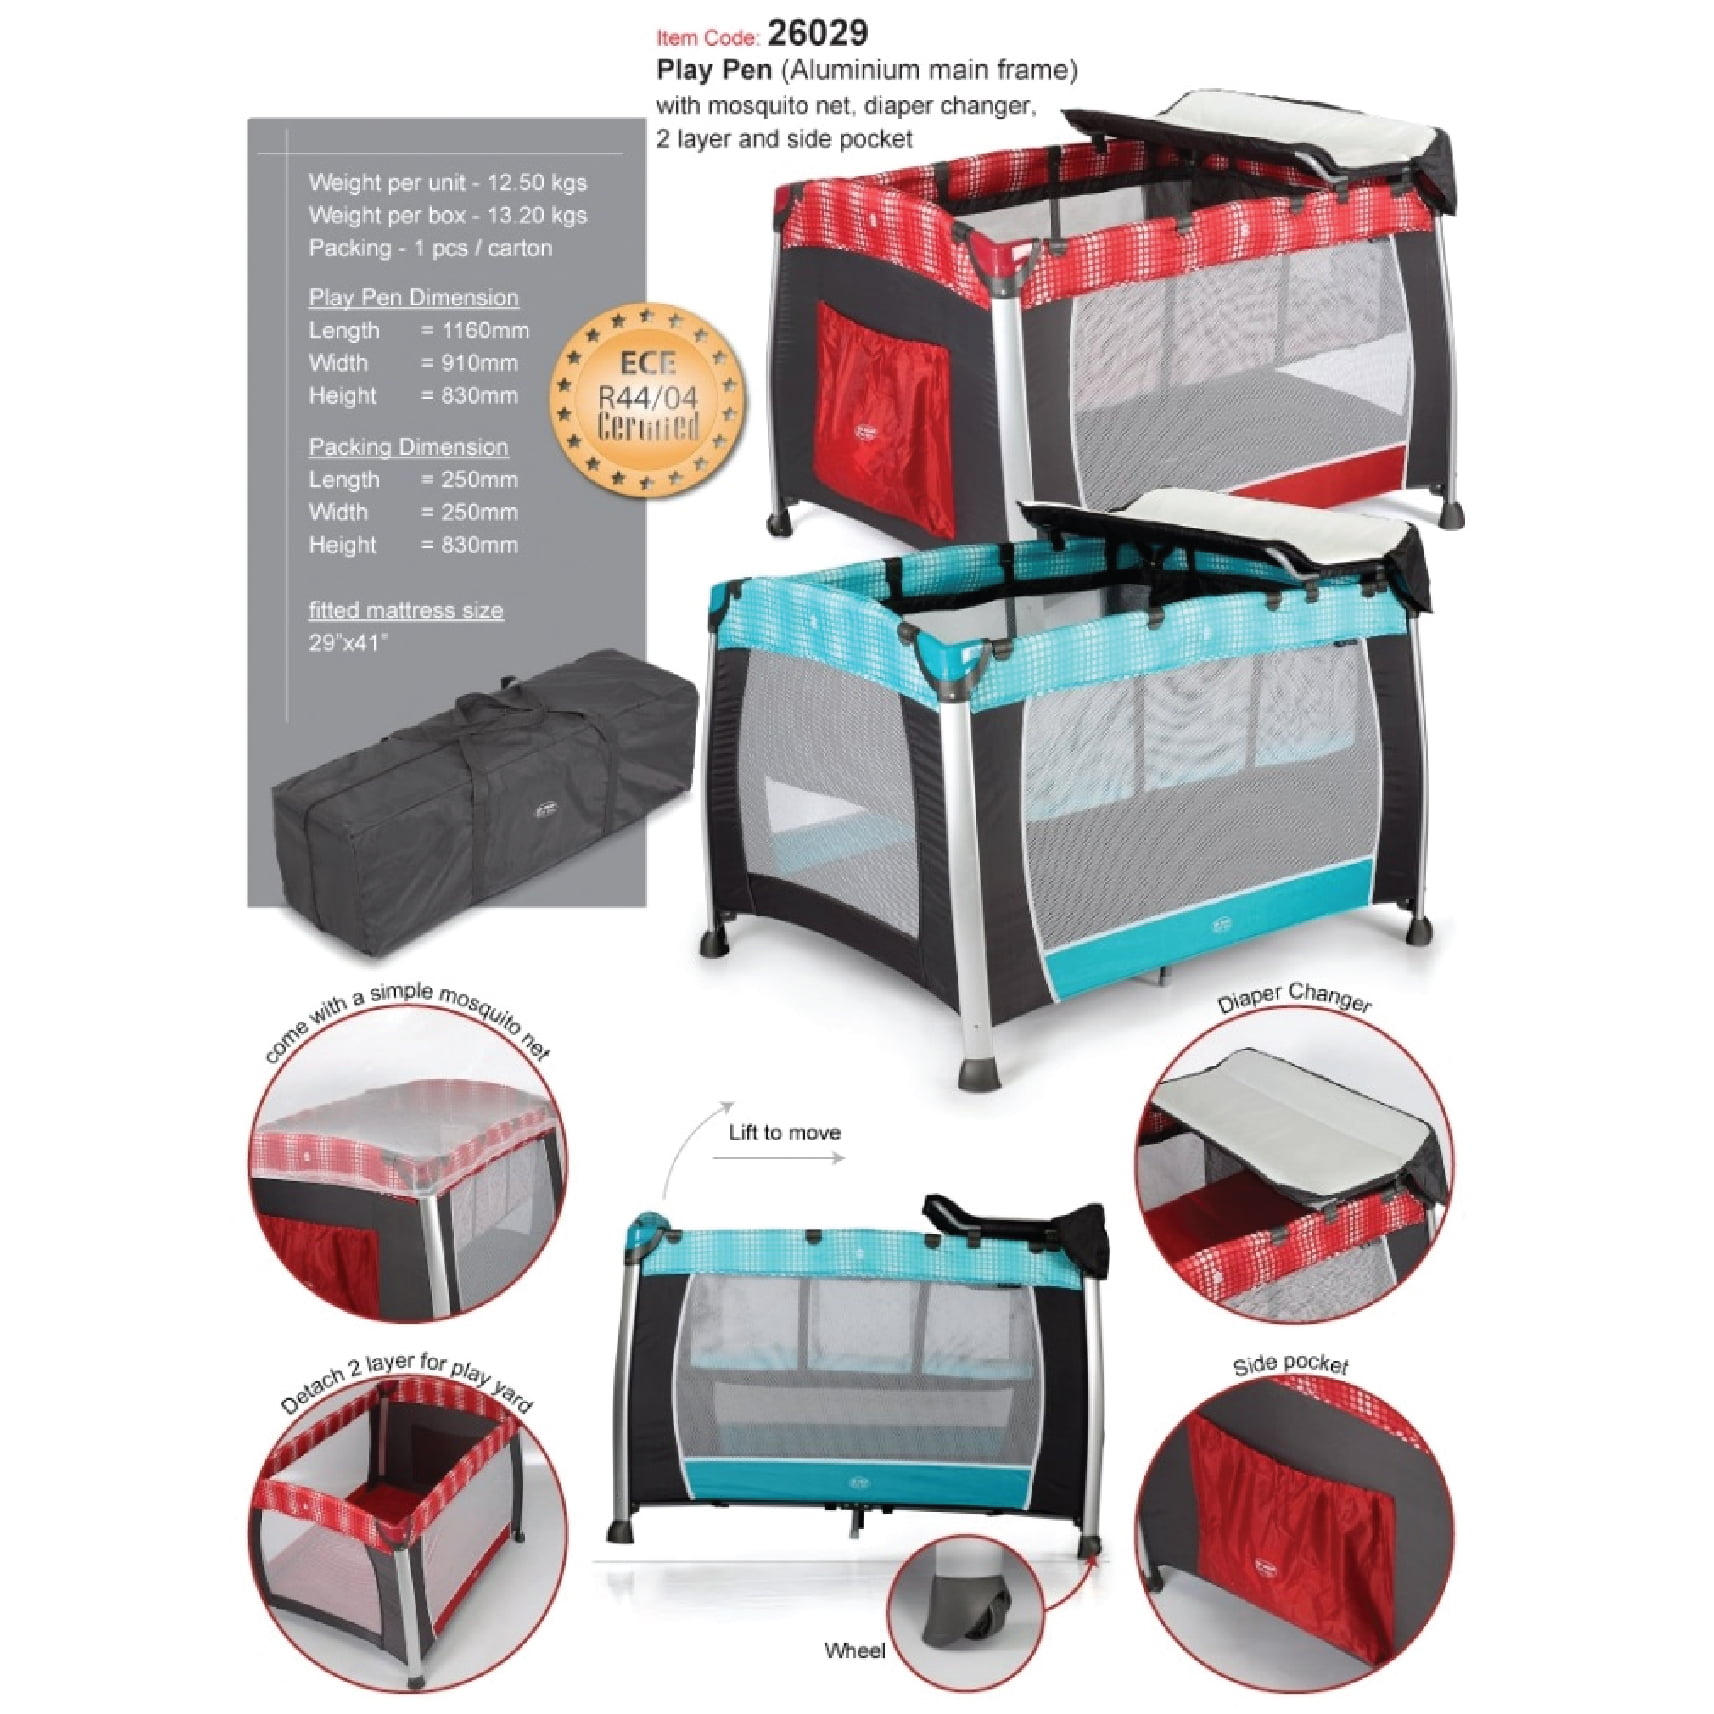 Baby bed online malaysia - My Dear Playpen With Diaper Changer Station 26029 Baby Needs Online Store Malaysia